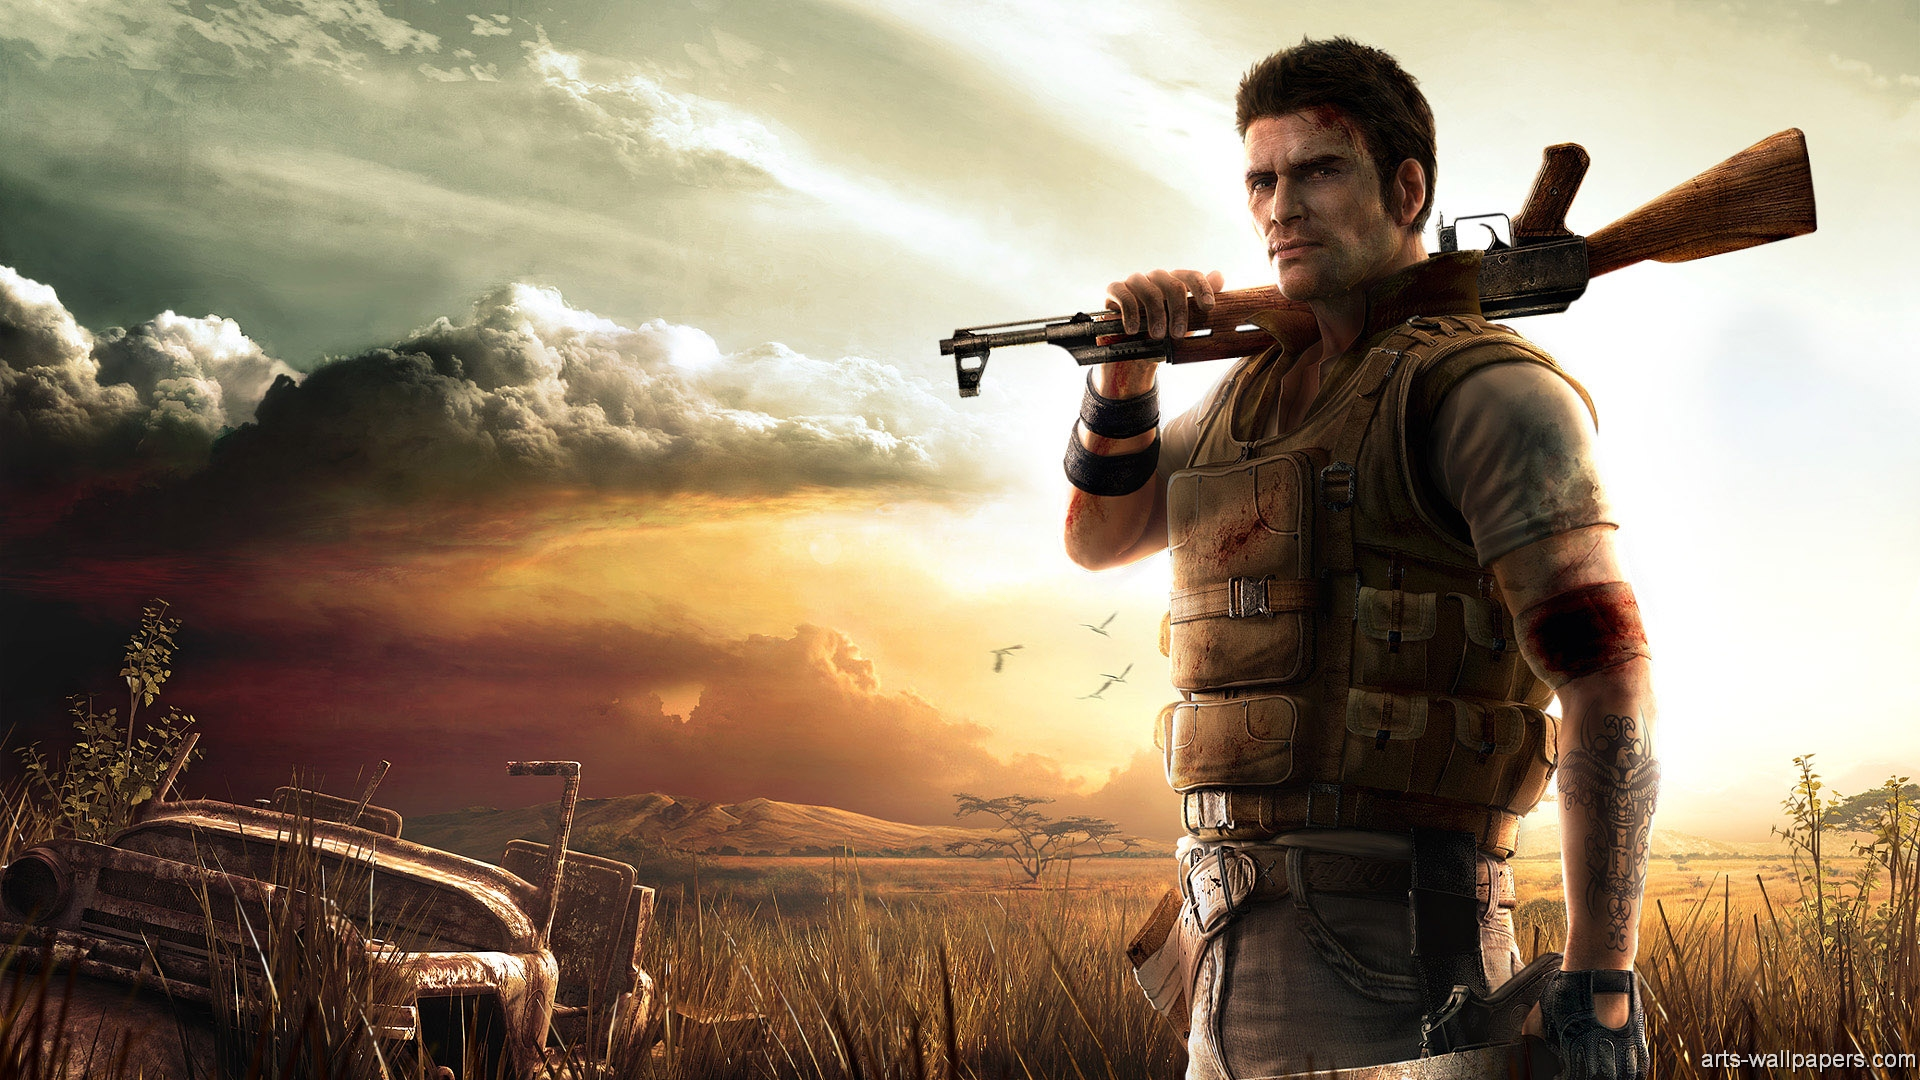 Hd wallpaper games - Games Hd Wallpapers Games Background Images